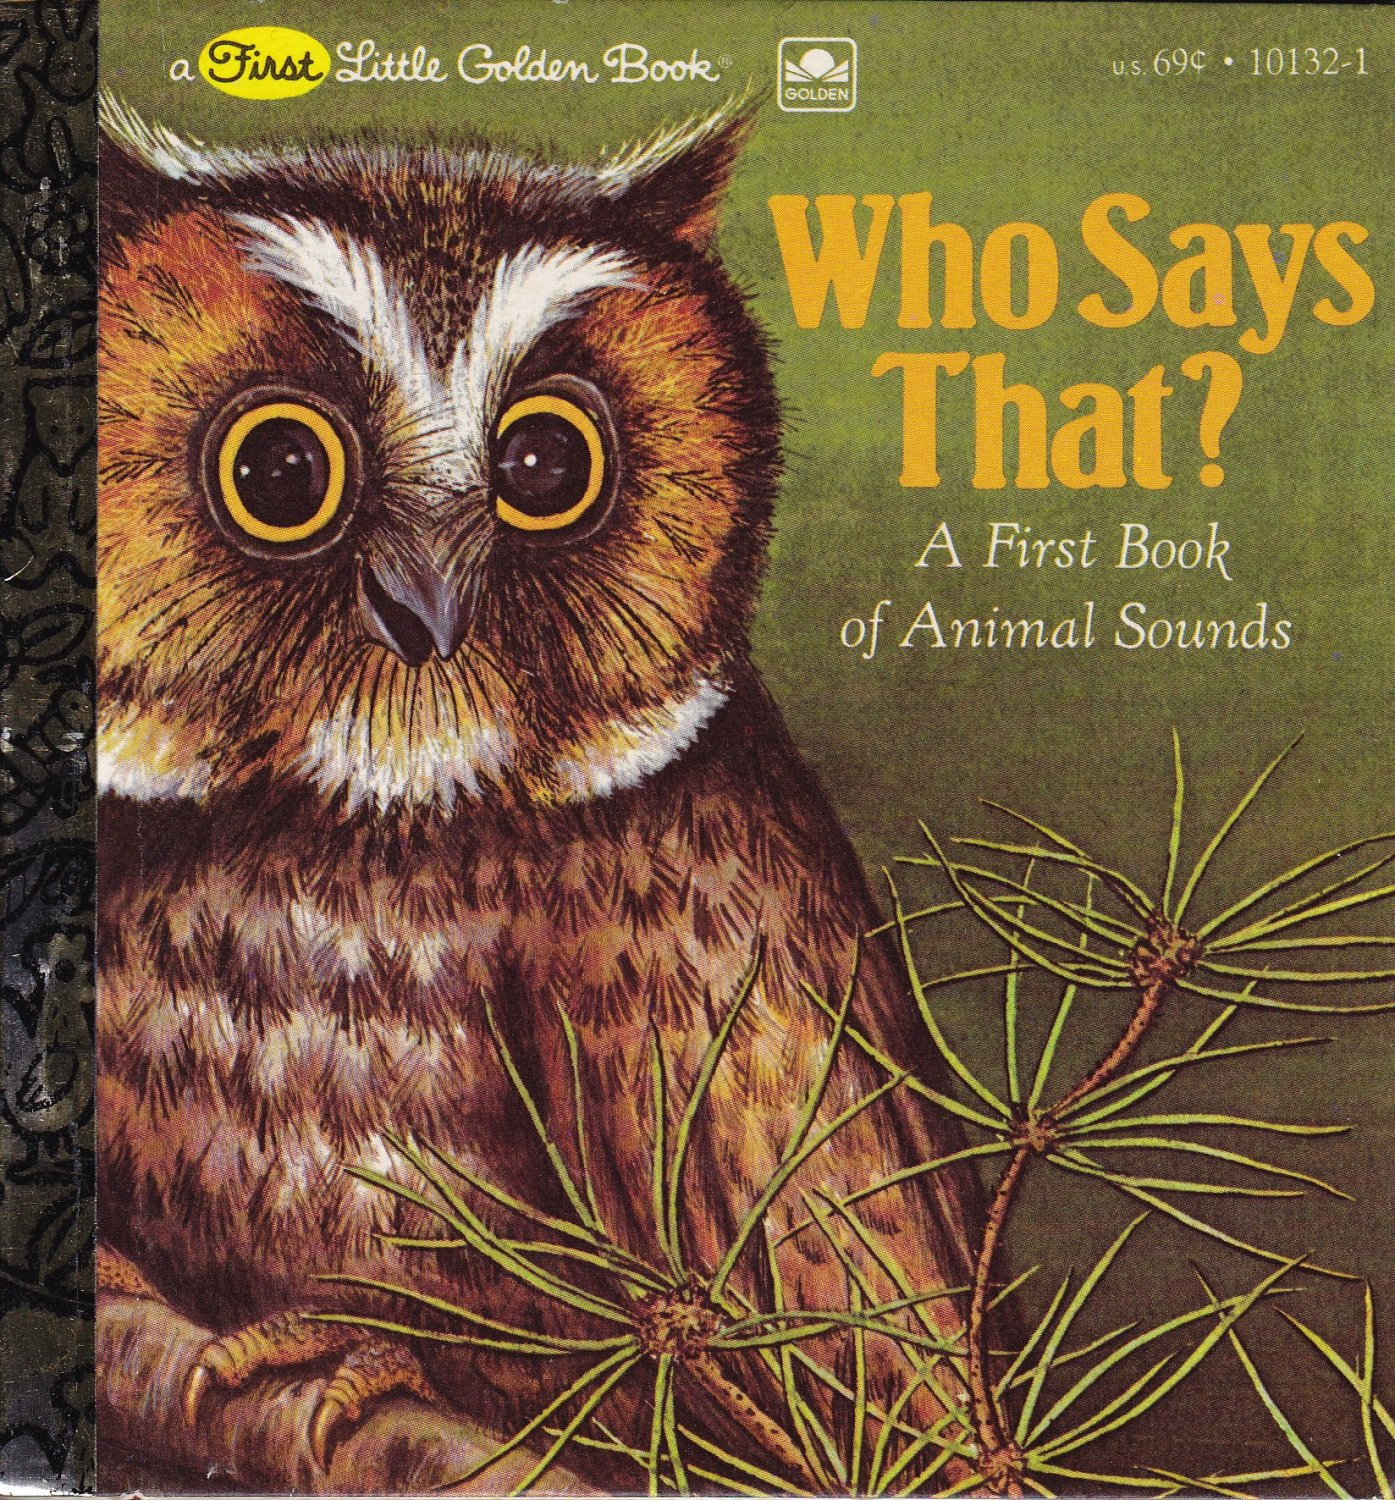 Who Says That by Marguerite Muntean Corsello